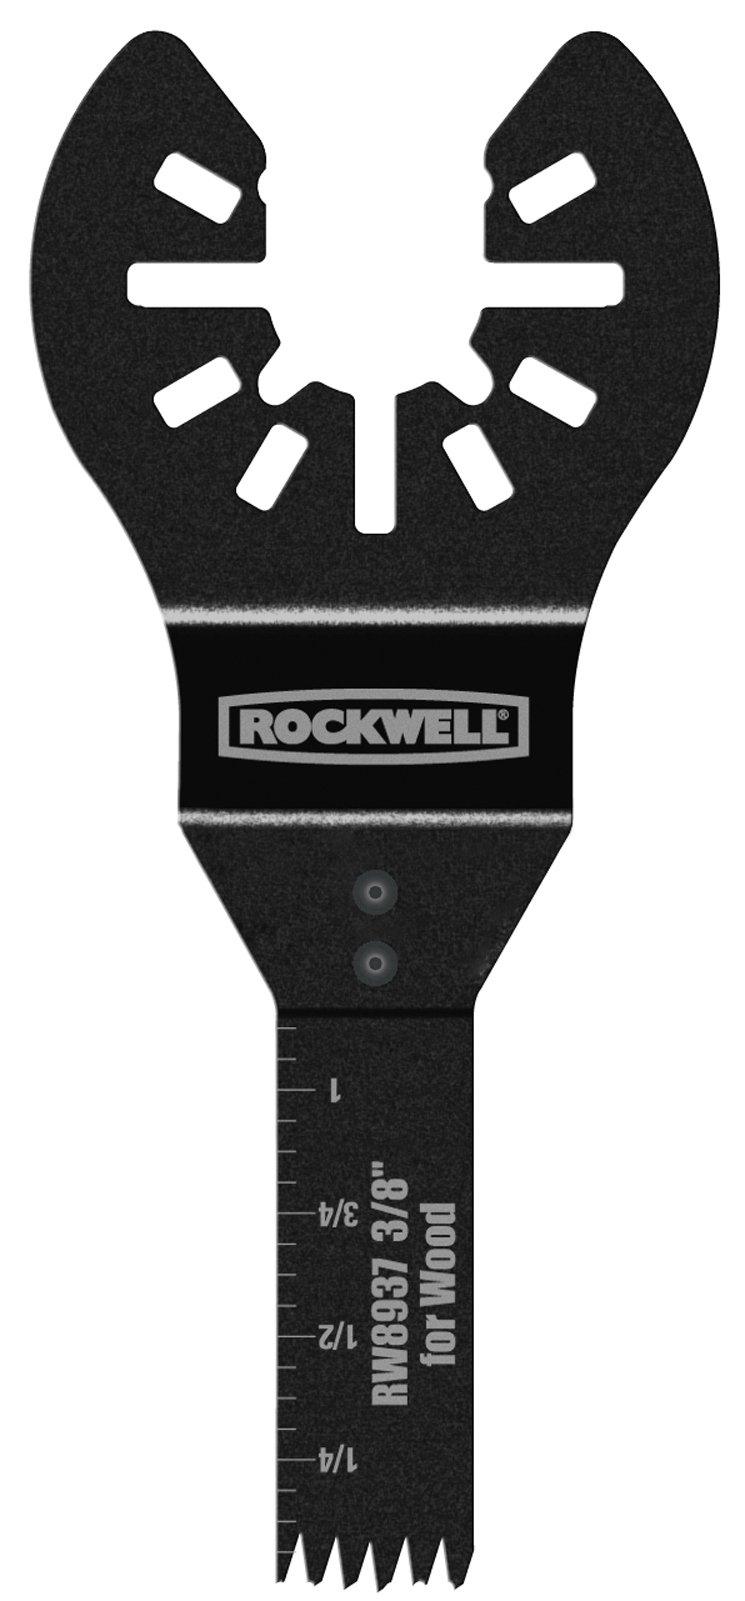 Rockwell RW8937 3/8-Inch Sonicrafter Oscillating Multitool Precision Wood End Cut Saw Blade with Universal Fit System